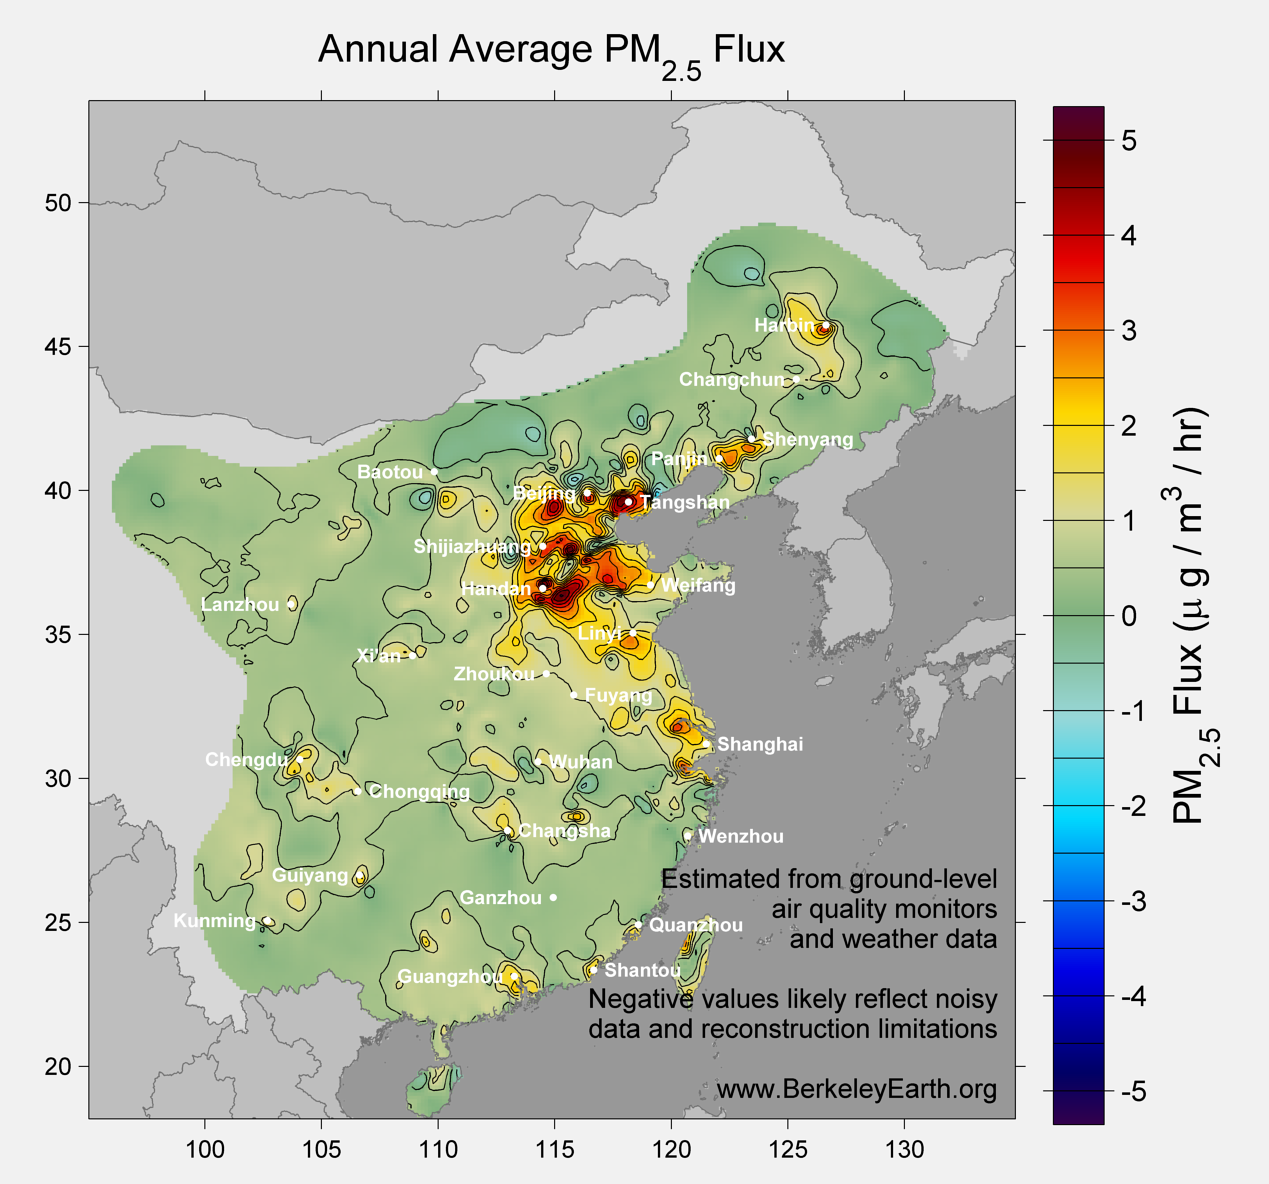 China_pm25_Average_Flux_Map